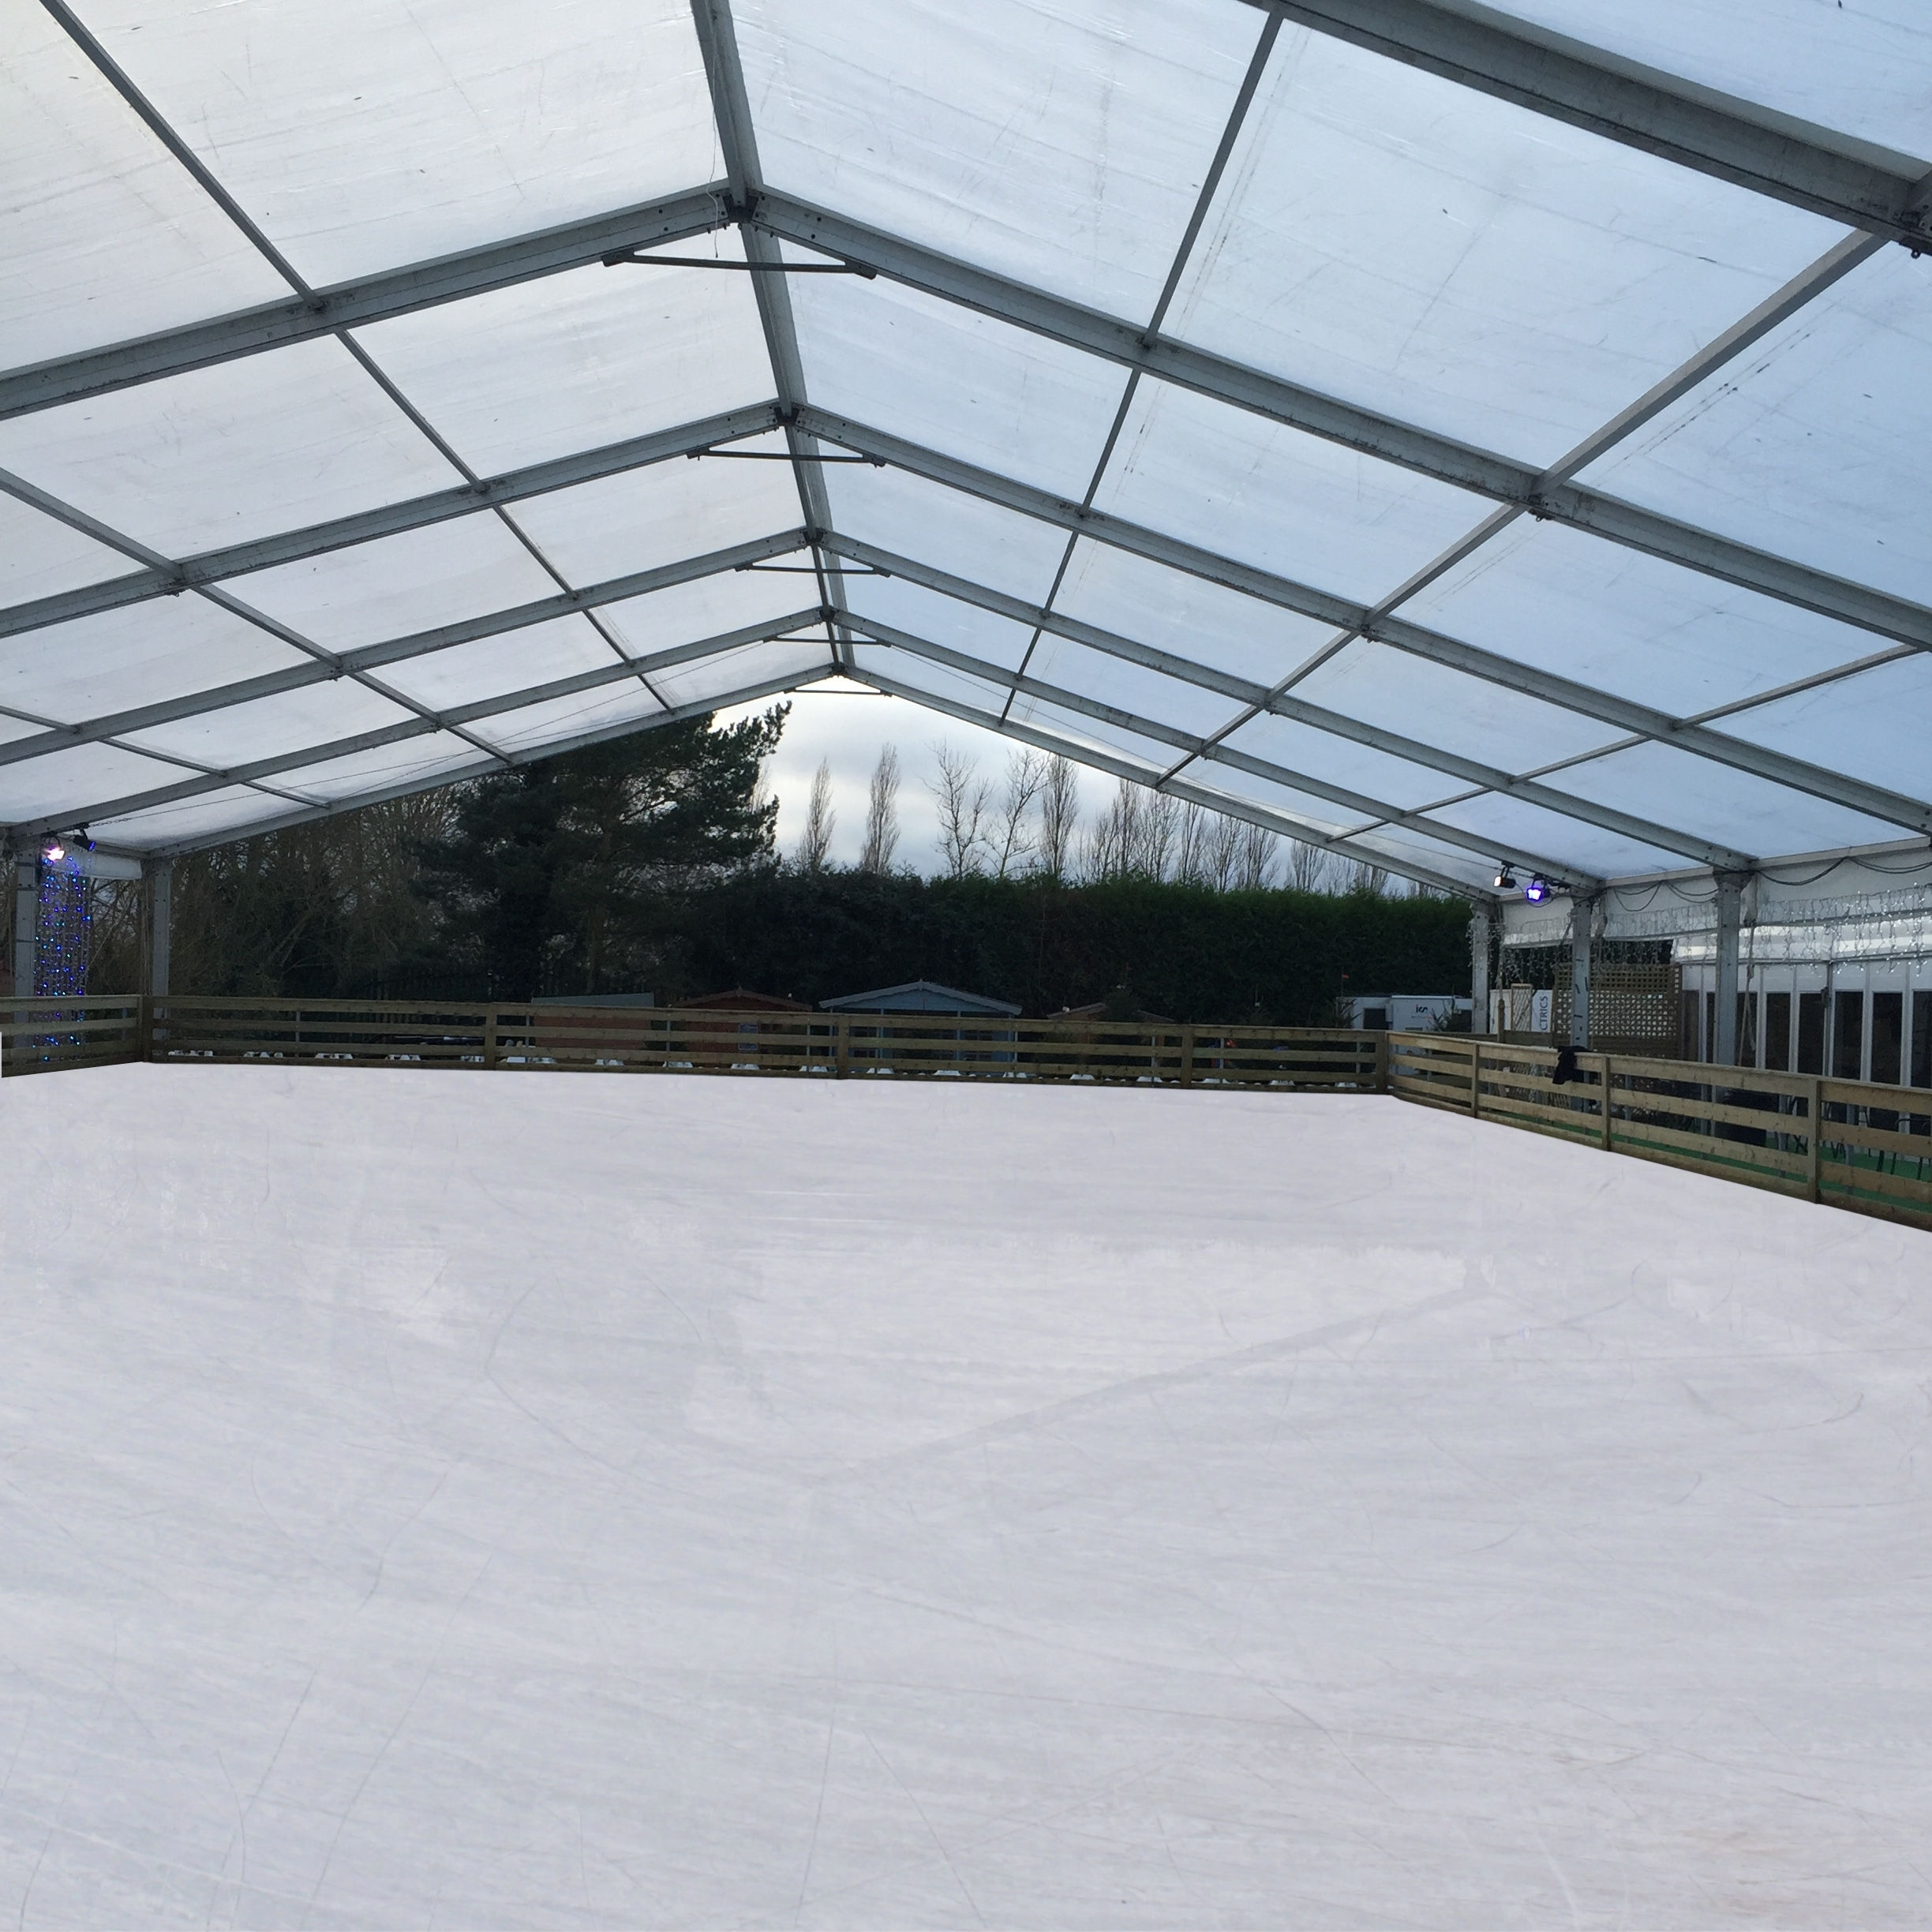 Woburn Sands Ice Rink